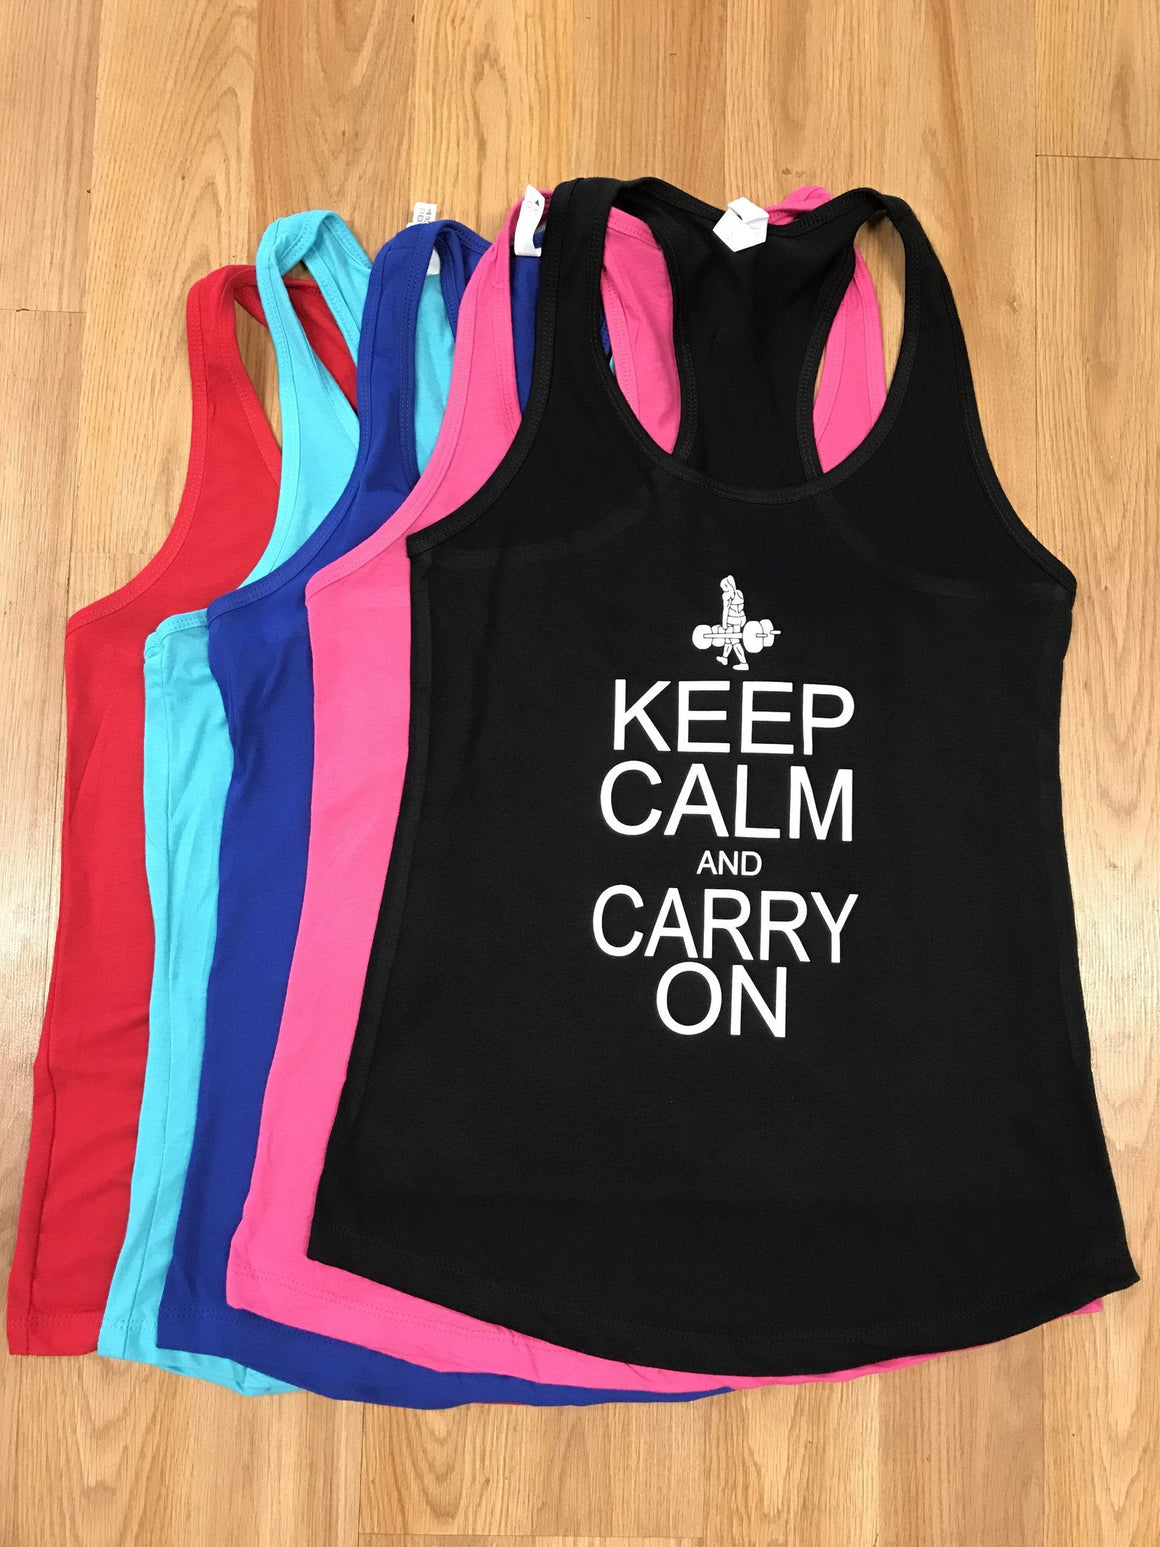 Keep Calm Carry On Women's Workout Racerback Tank- The Sox Box